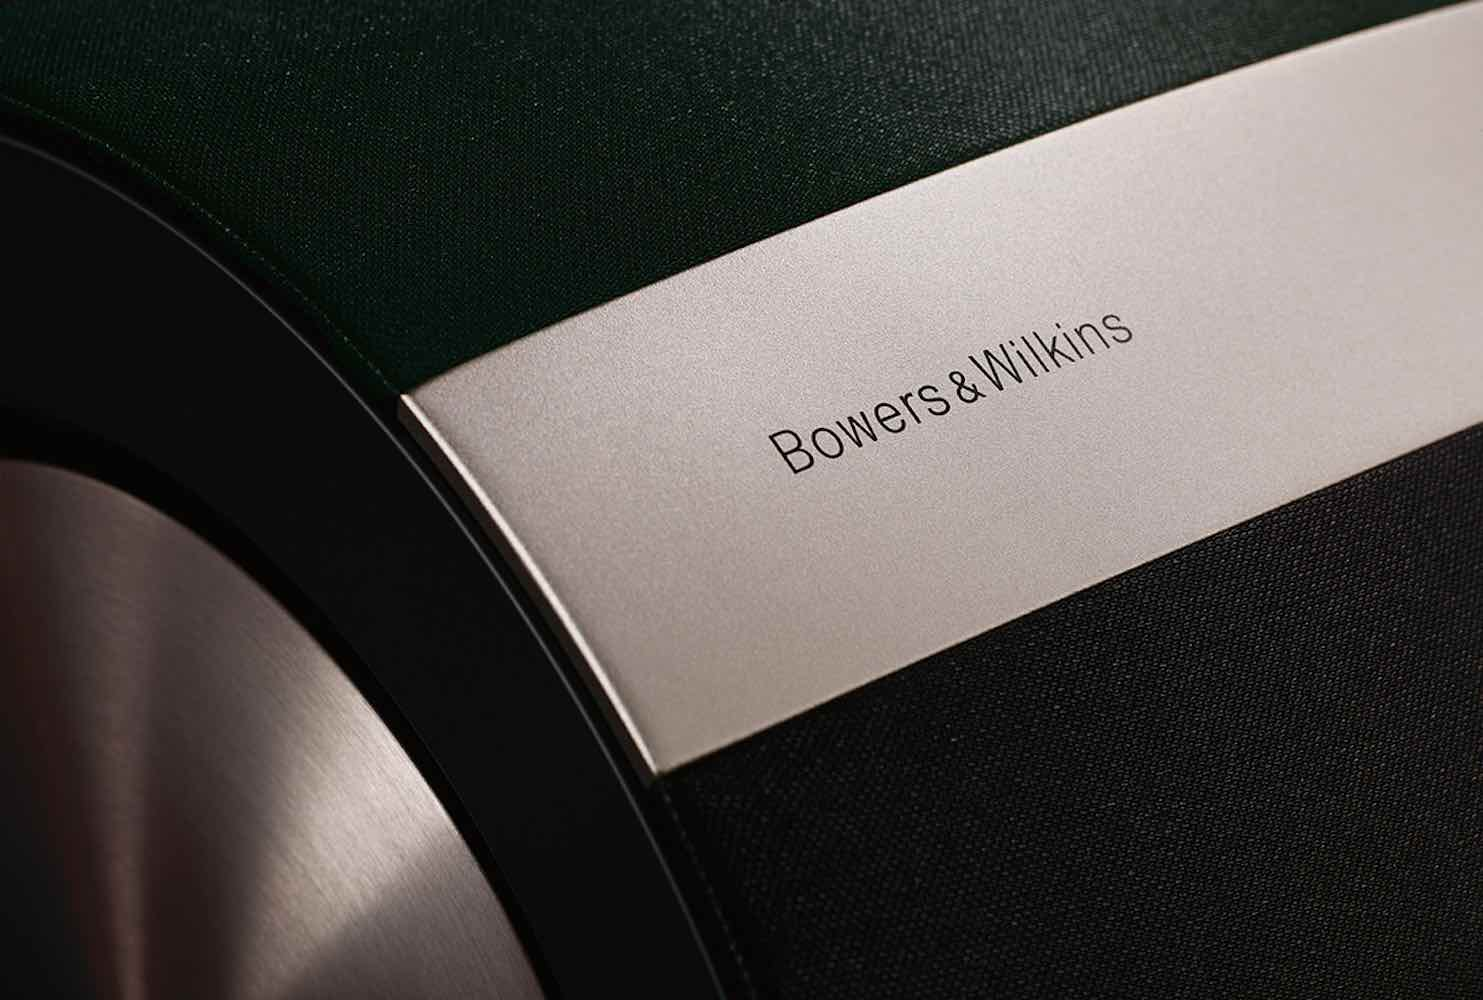 B&W Bowers & Wilkins Formation Bass Subwoofer